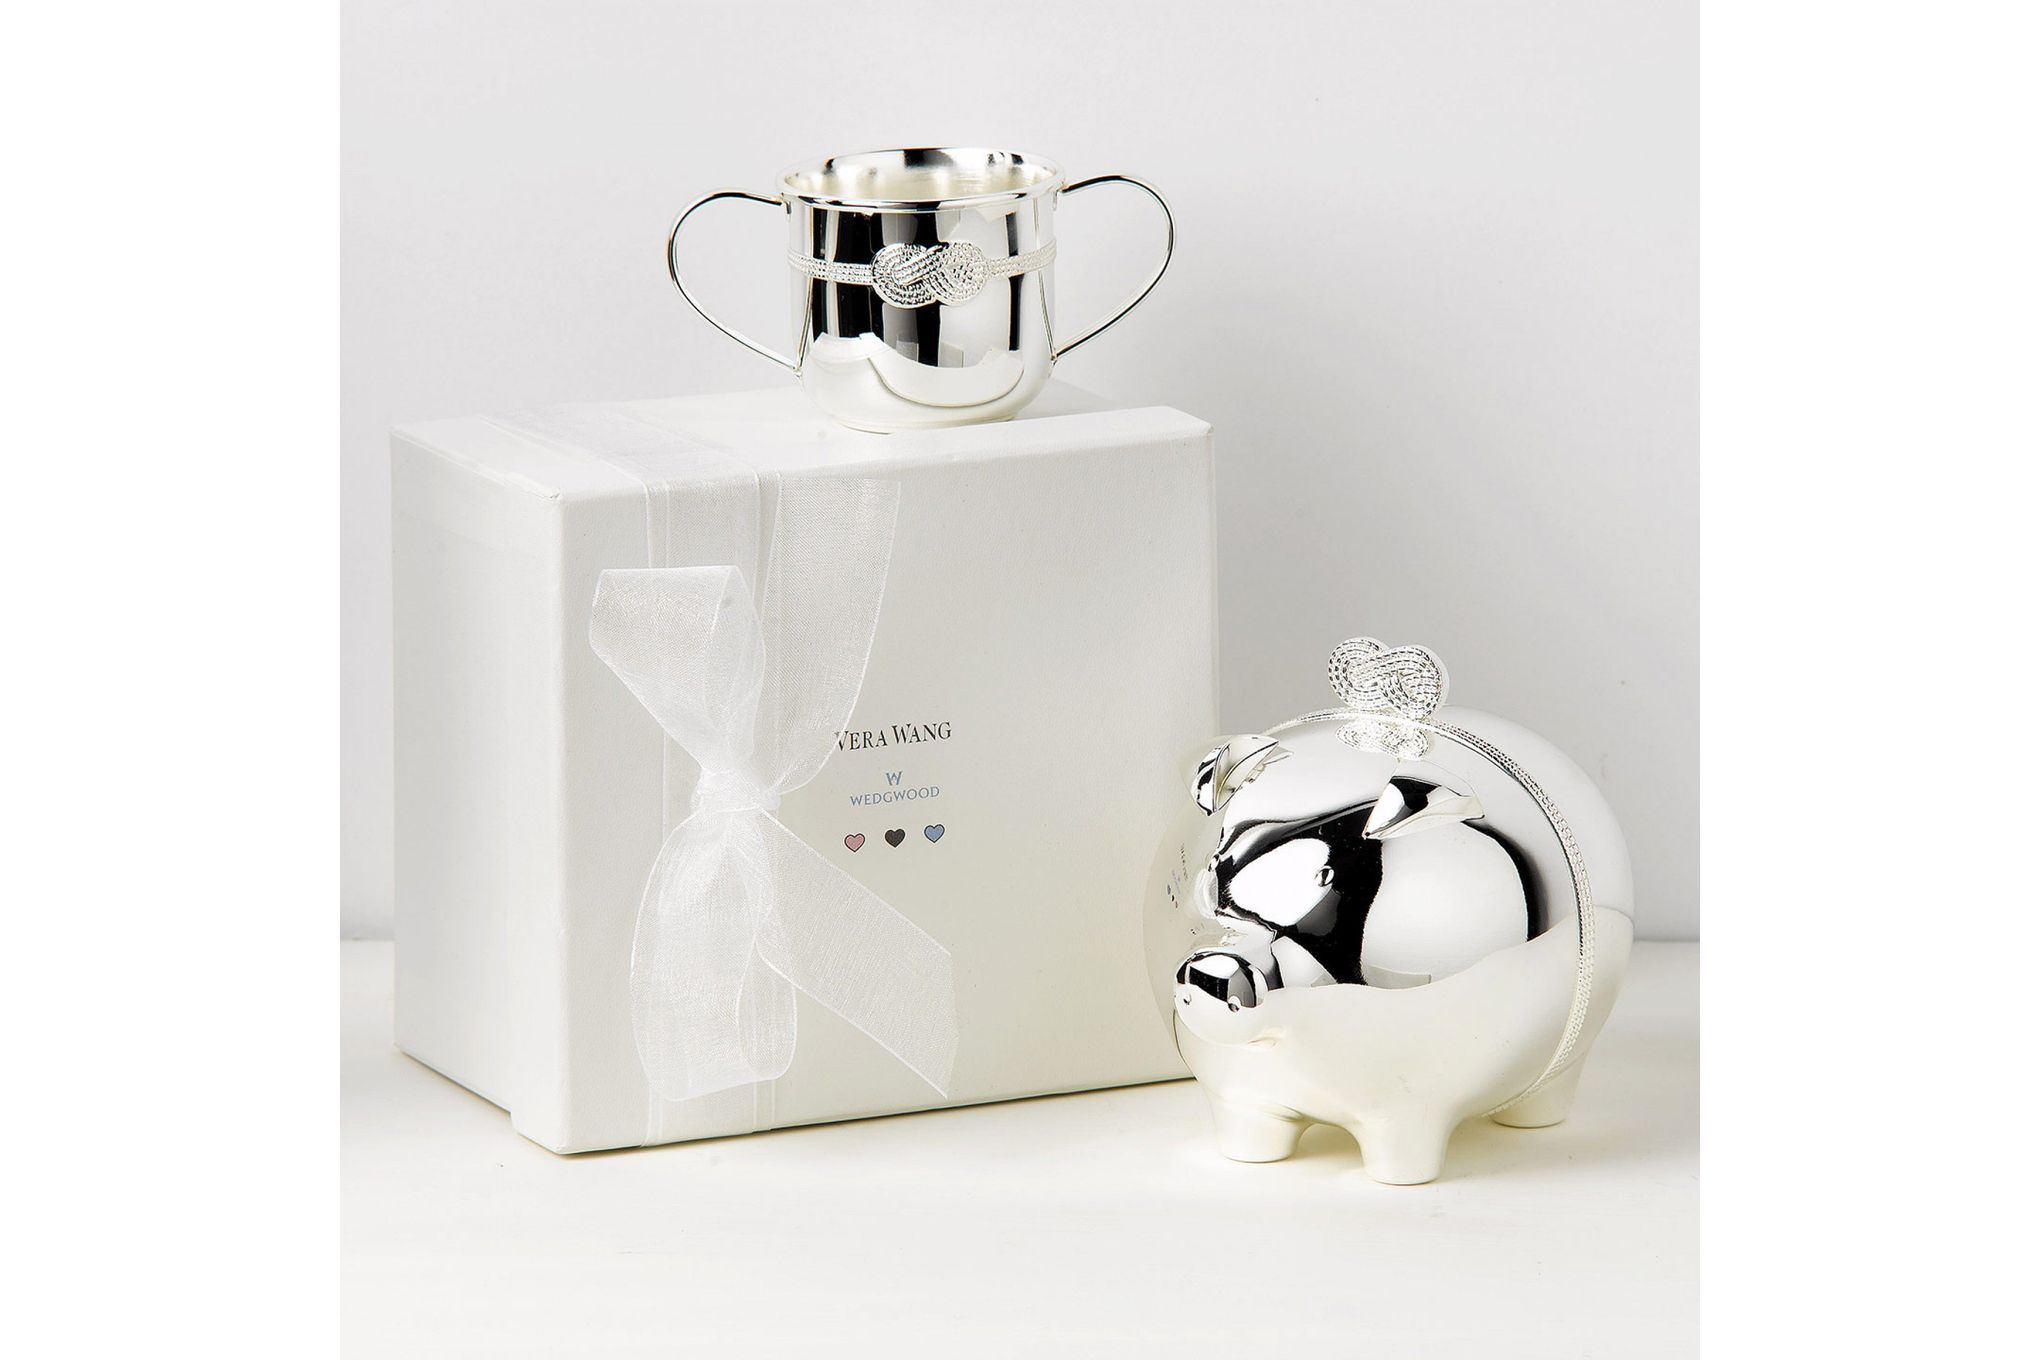 Vera Wang for Wedgwood Gifts & Accessories Piggy Bank Infinity thumb 2